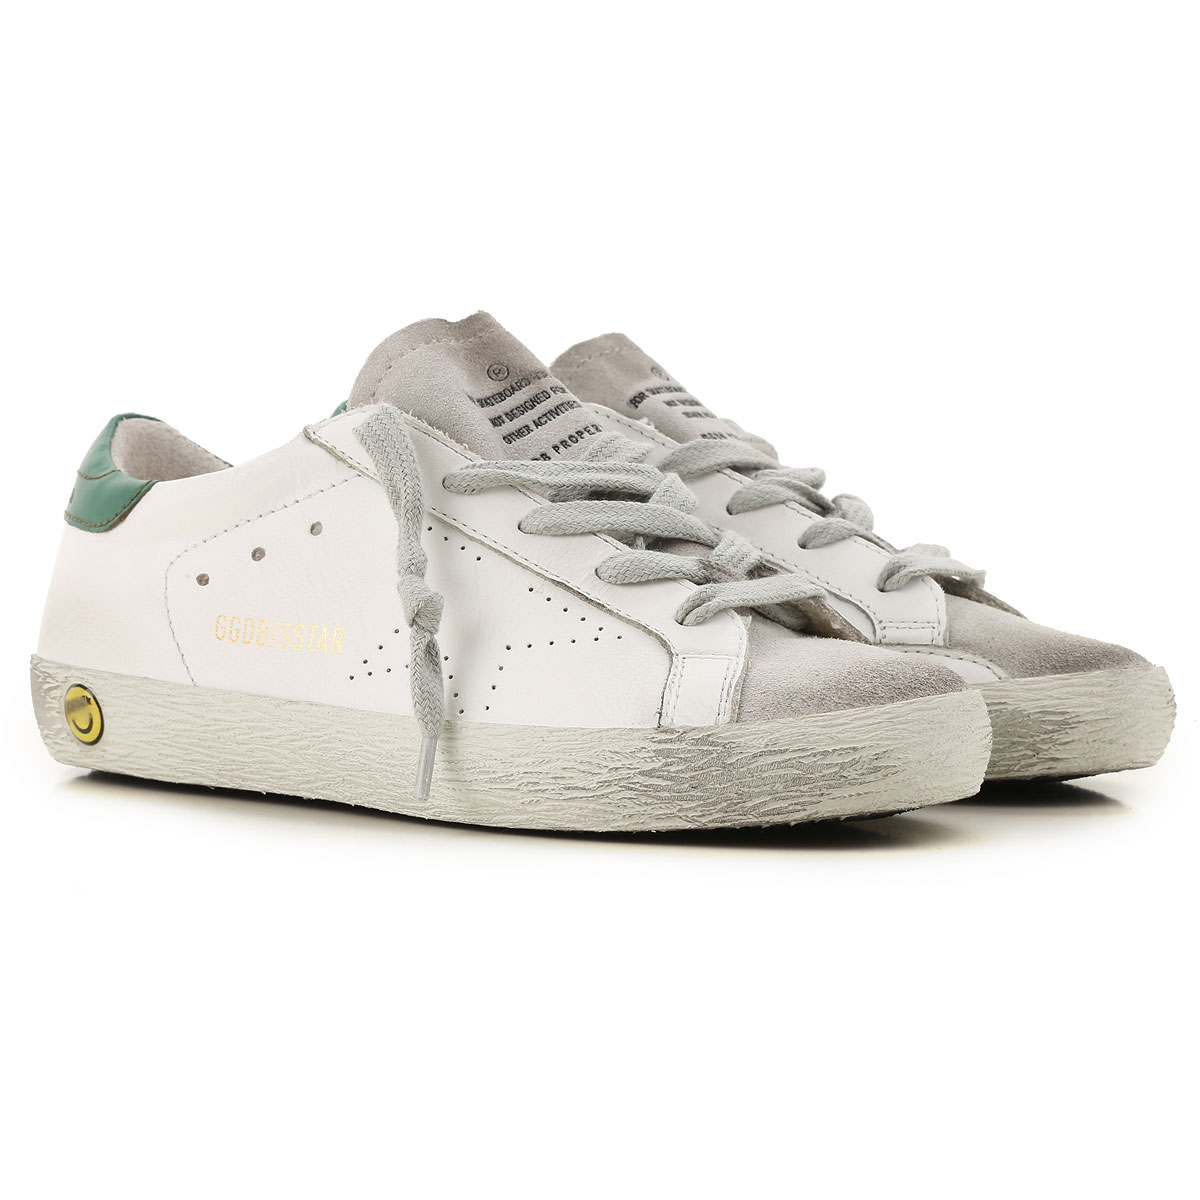 Golden Goose Kids Shoes for Boys On Sale in Outlet, White, Leather, 2019, 30 32